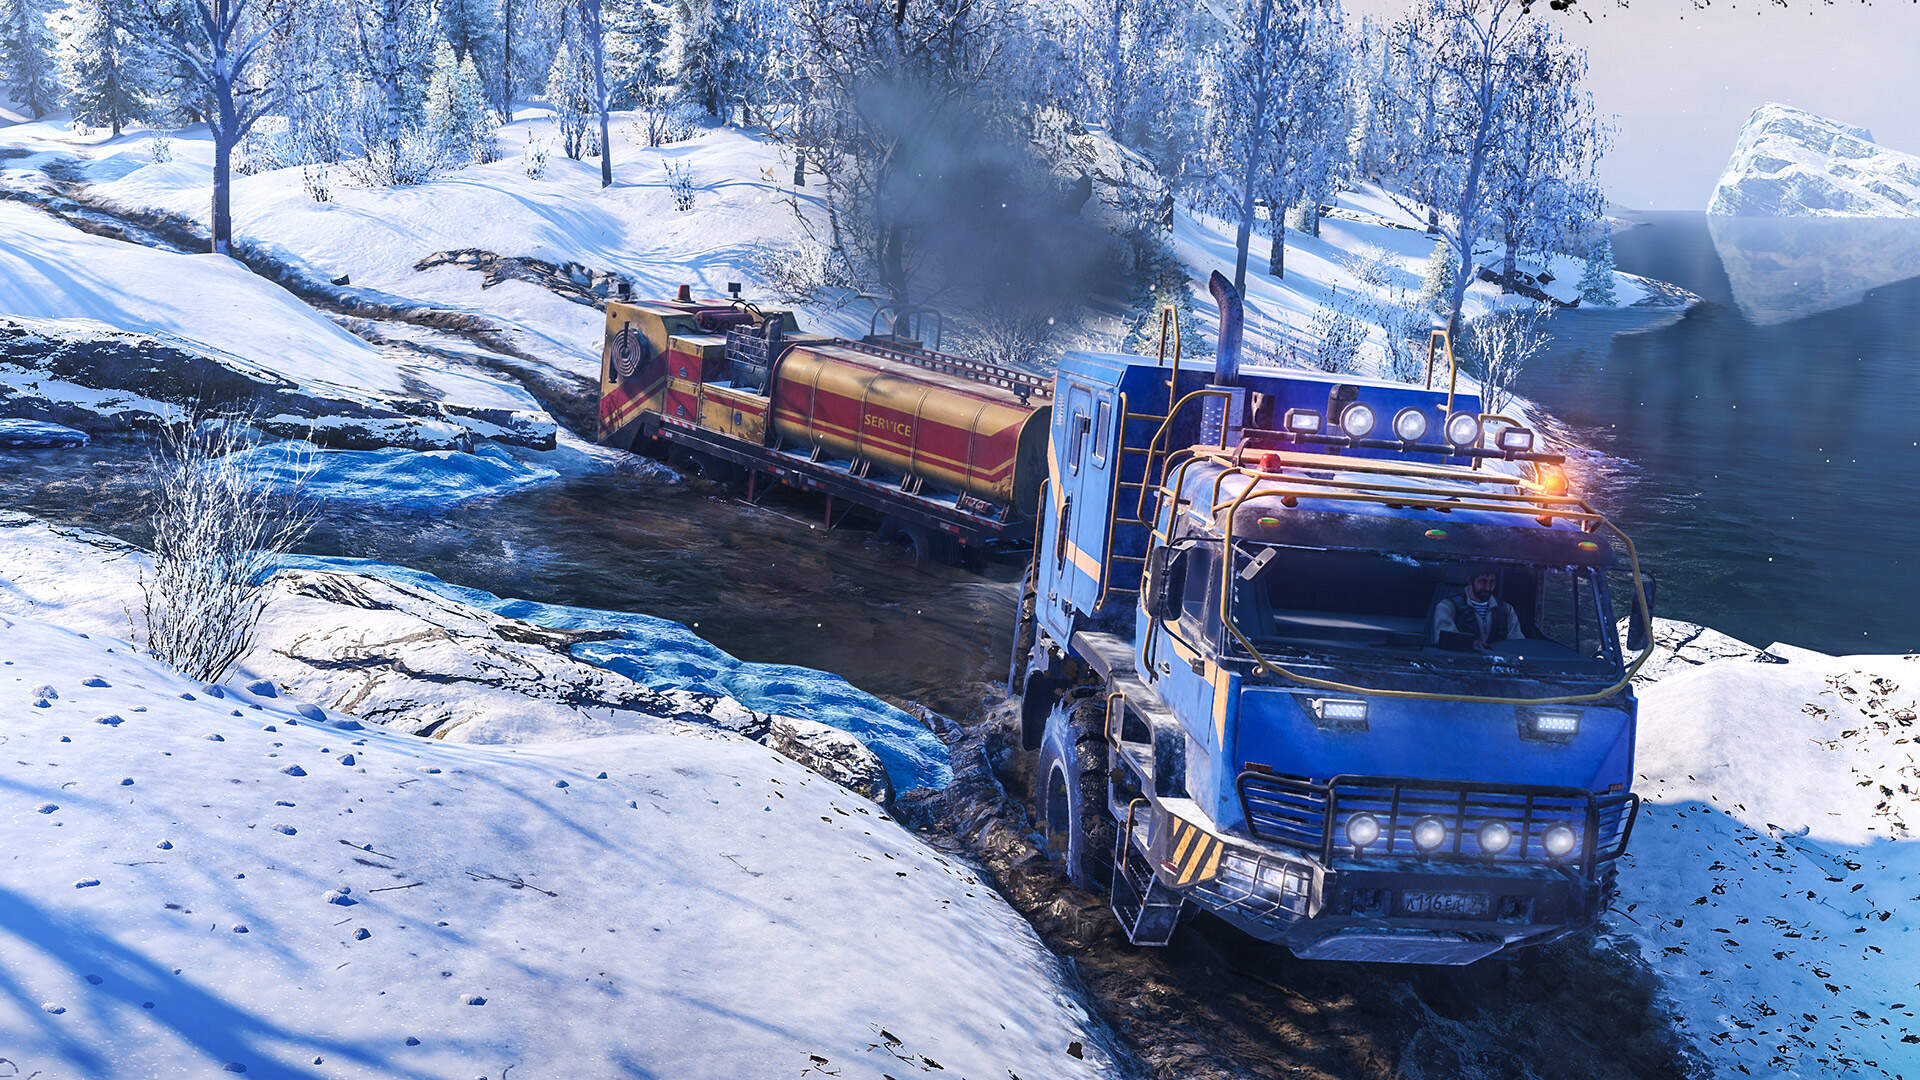 SnowRunner is Death Stranding But With Trucks, And I Love It